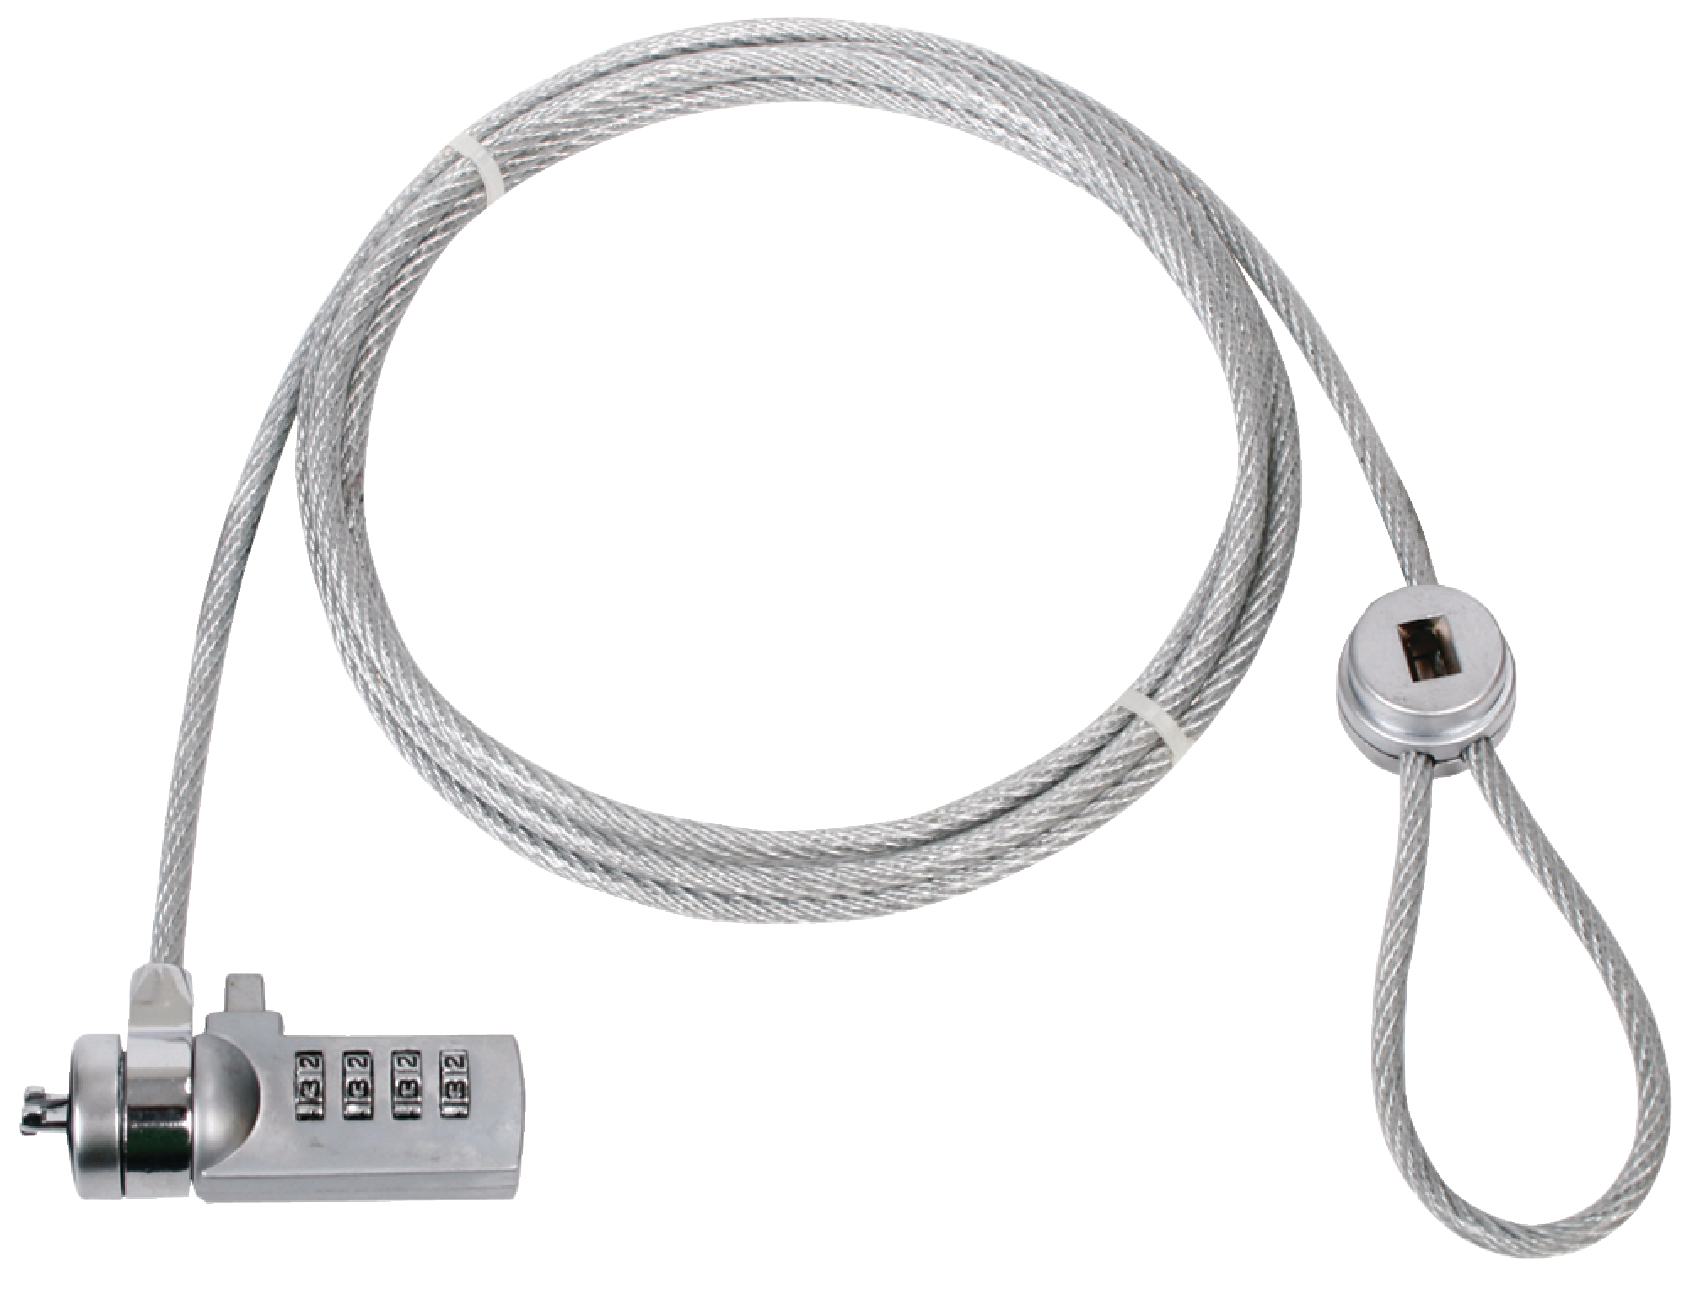 Cable Security Tools